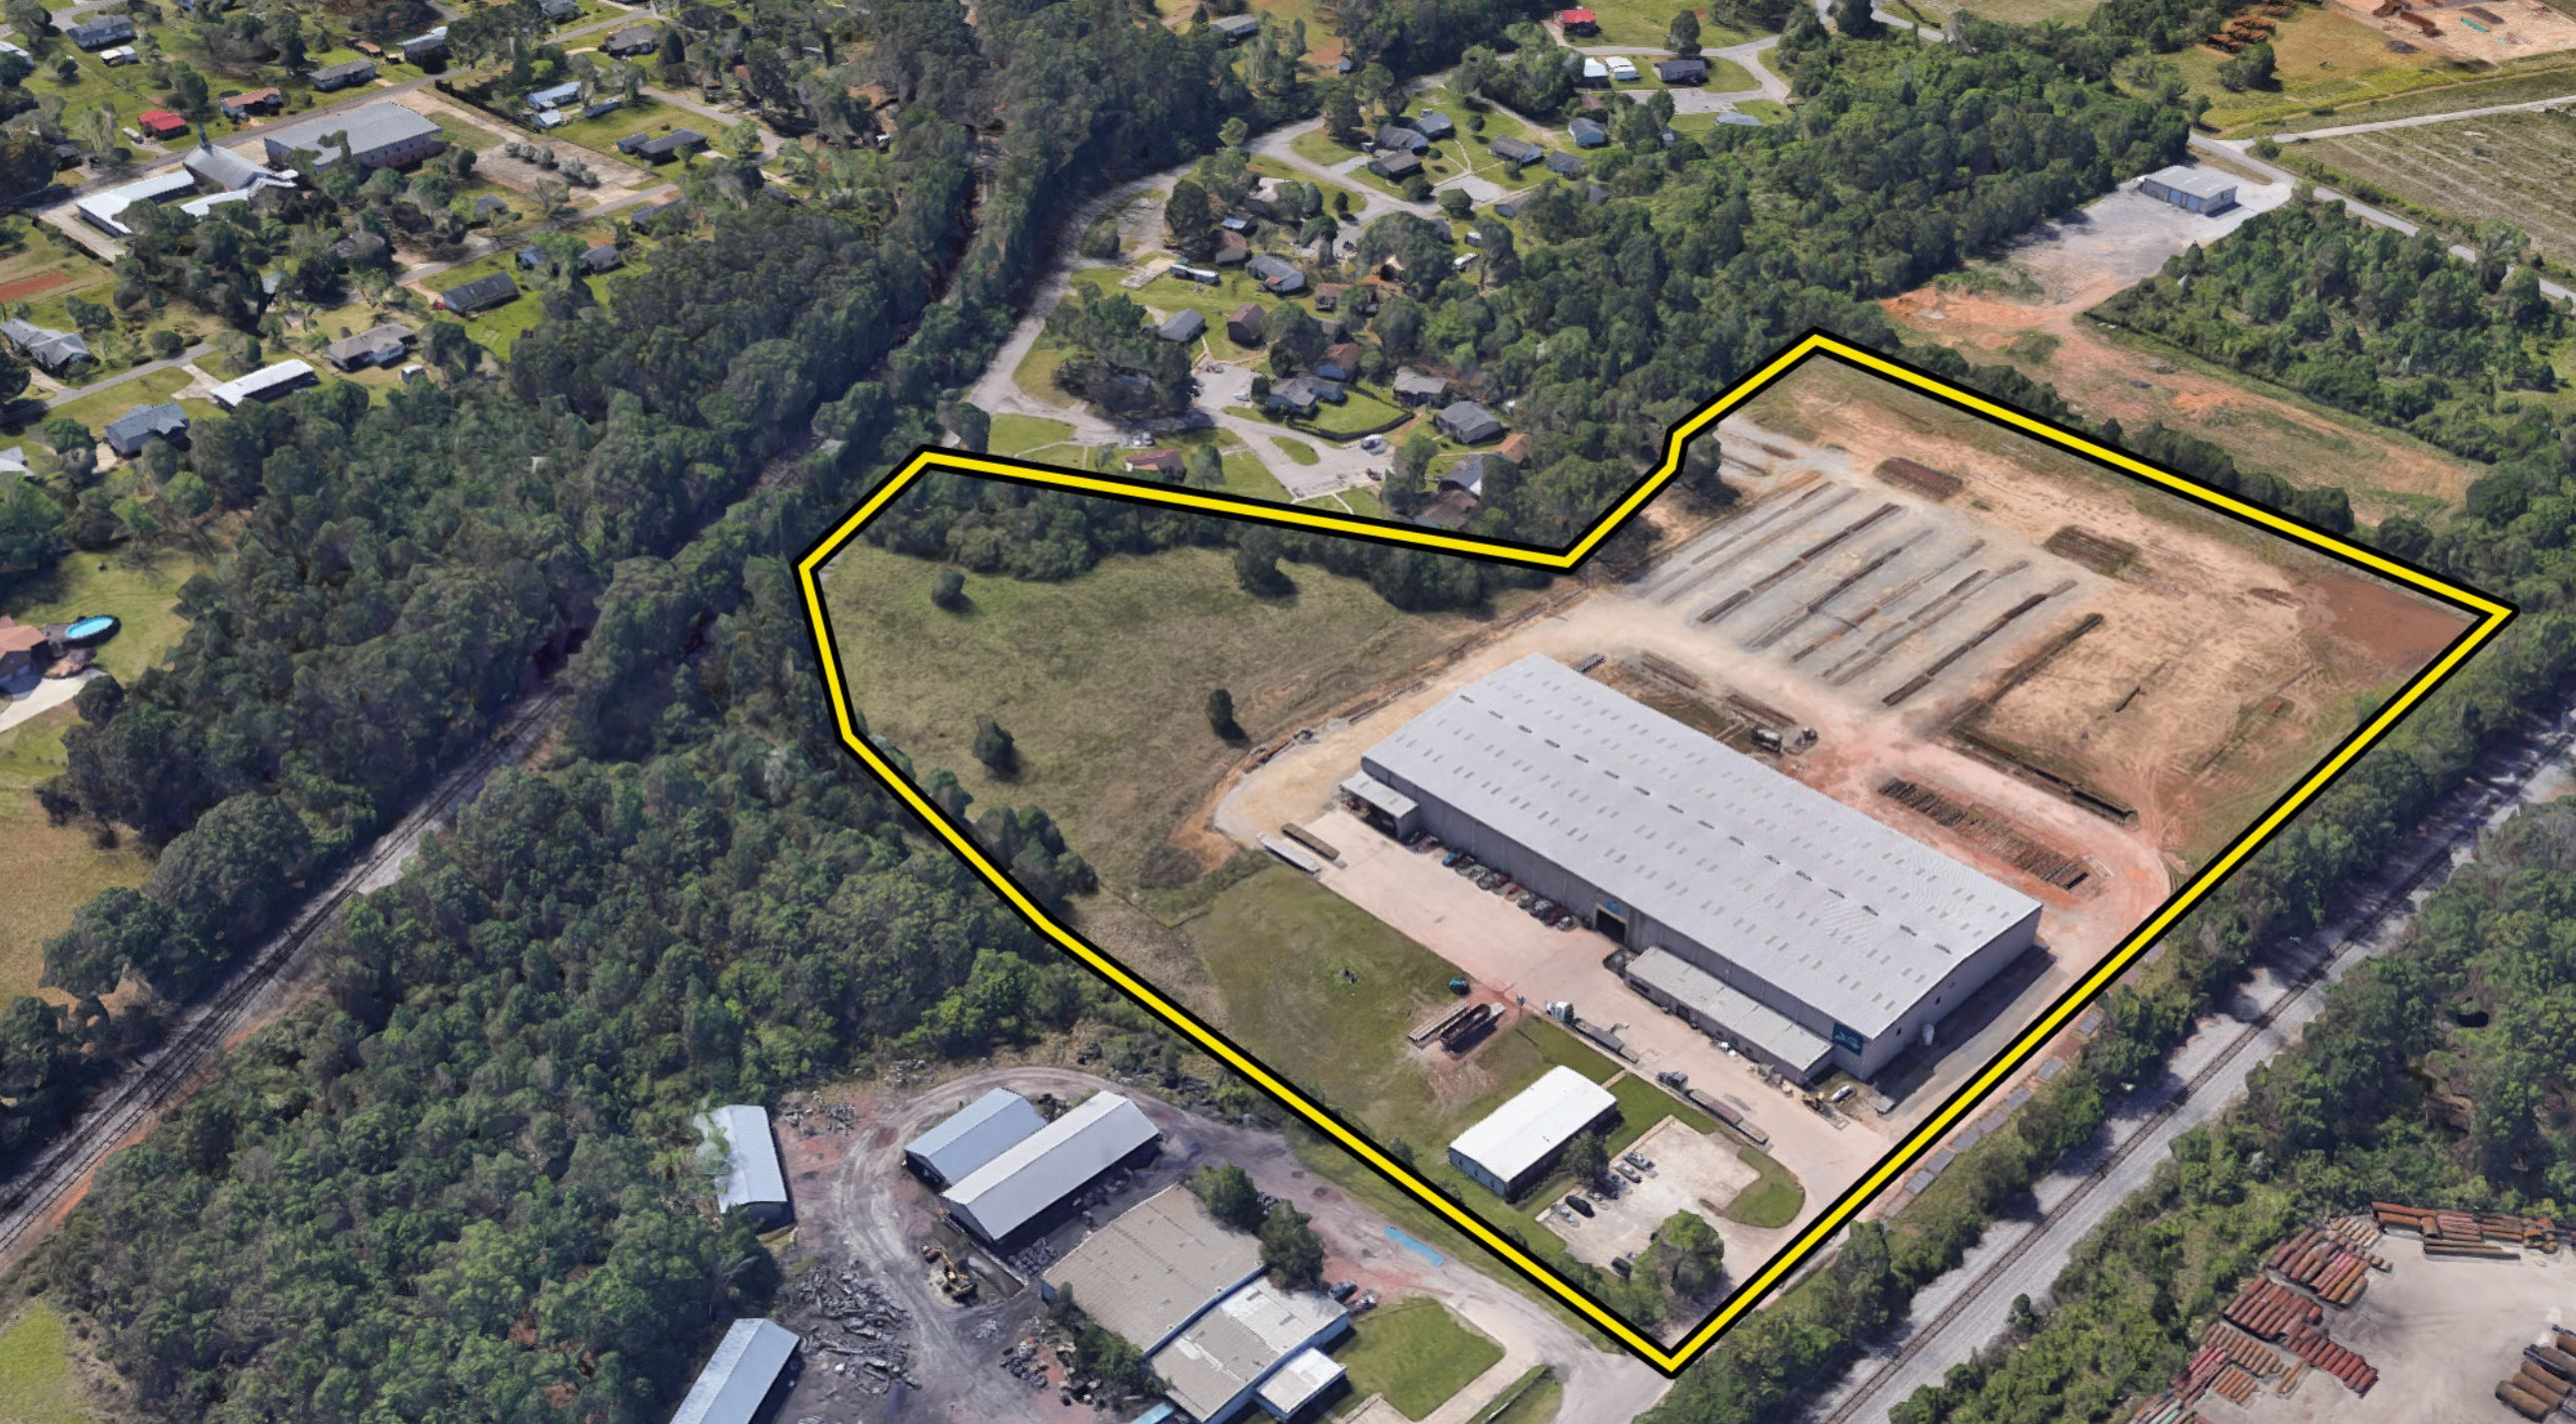 Printer Memorials acquires Bessemer Industrial Building for $1.2M